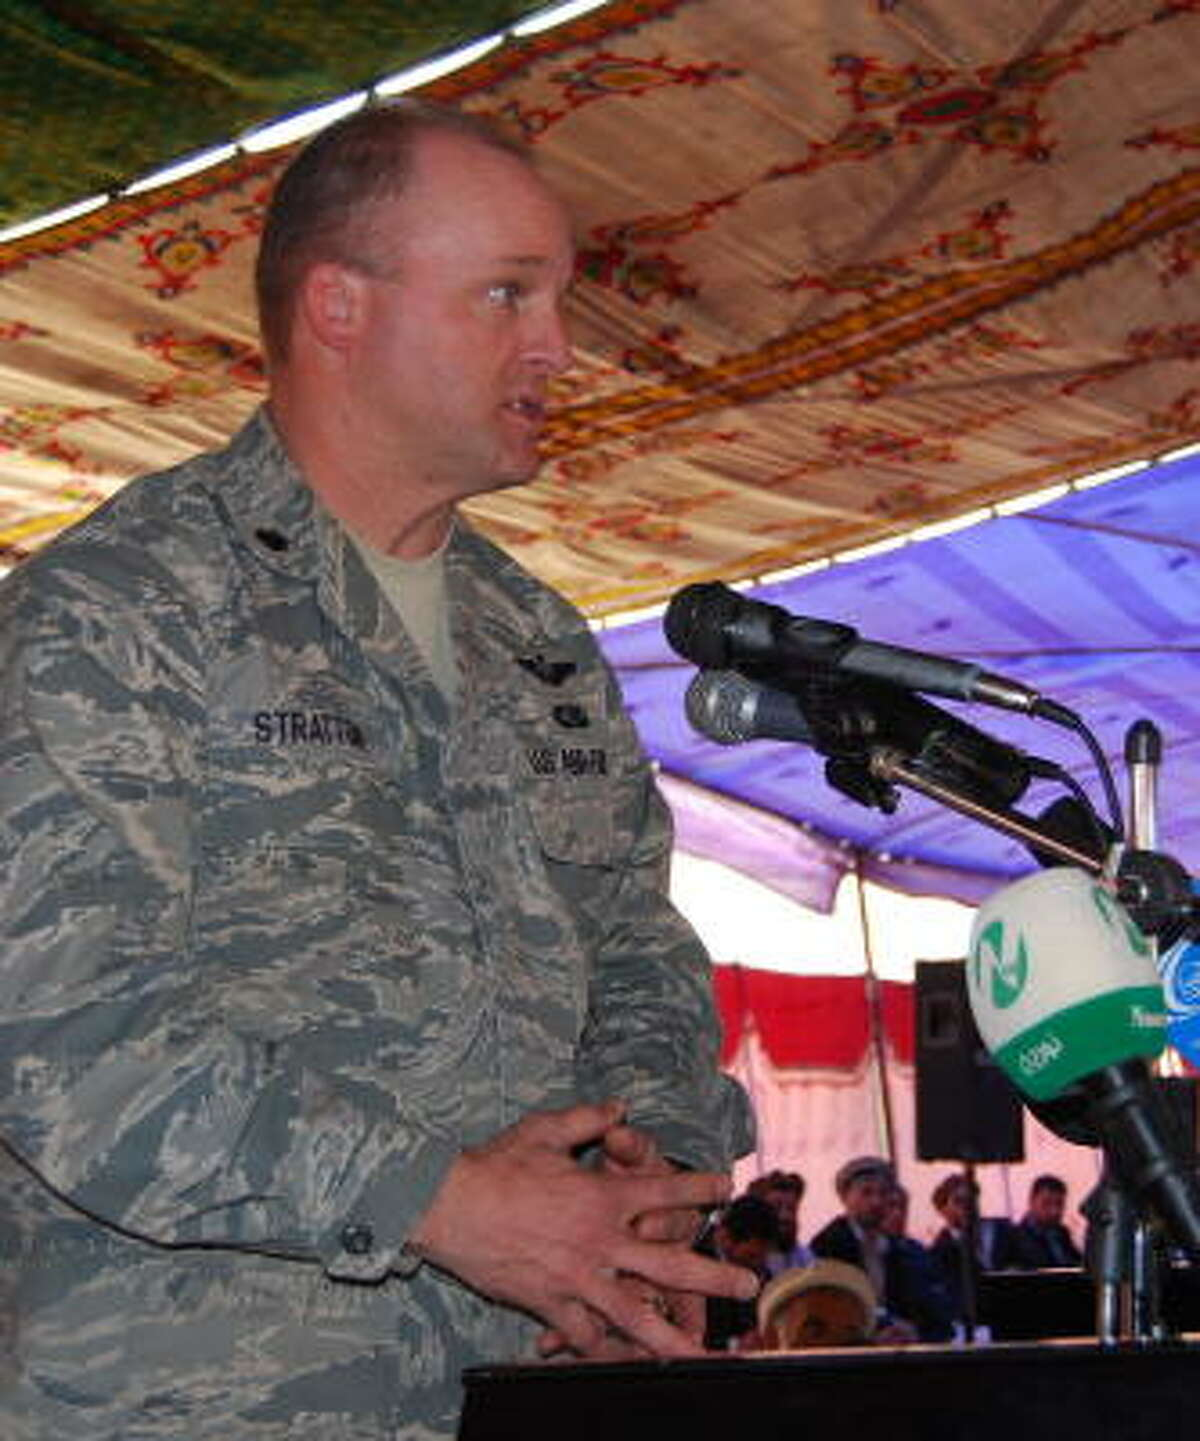 Lt. Col. Mark Stratton speaks in March in Safied Shahir, Afghanistan. Stratton died Tuesday near Bagram Air Field of wounds from a bomb explosion, according to Pentagon officials.